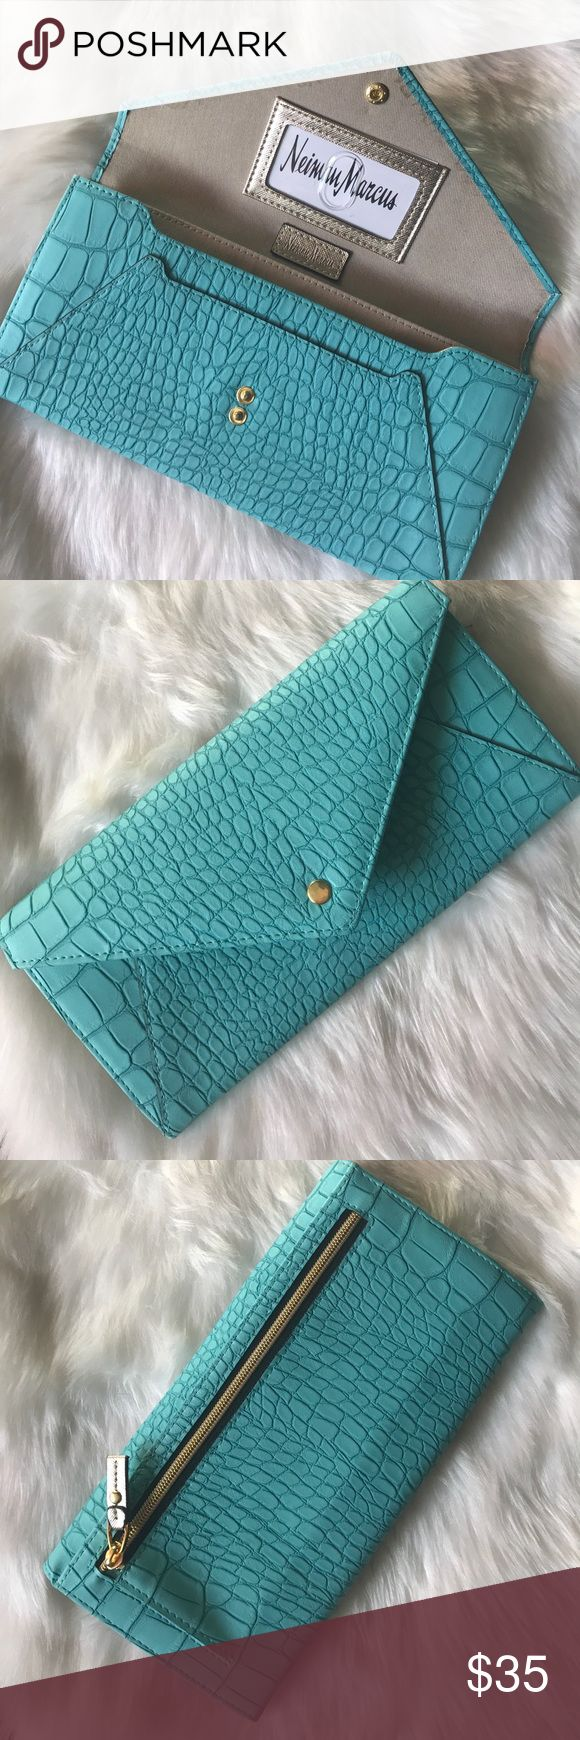 "EUC. Neiman Marcus Croc Embossed Envelope Clutch EUC. Neiman Marcus Croc Embossed Envelope Clutch in Turquoise and Gold faux leather. Excellent used condition. Only used once for a wedding. Lots of room in this clutch. Exterior zipper pocket. Four inside slip pockets, 8 credit card slots and an id slot. Fits even the largest phone!  Approx. 9.5 x 5 x 1"" Neiman Marcus Bags Clutches & Wristlets"